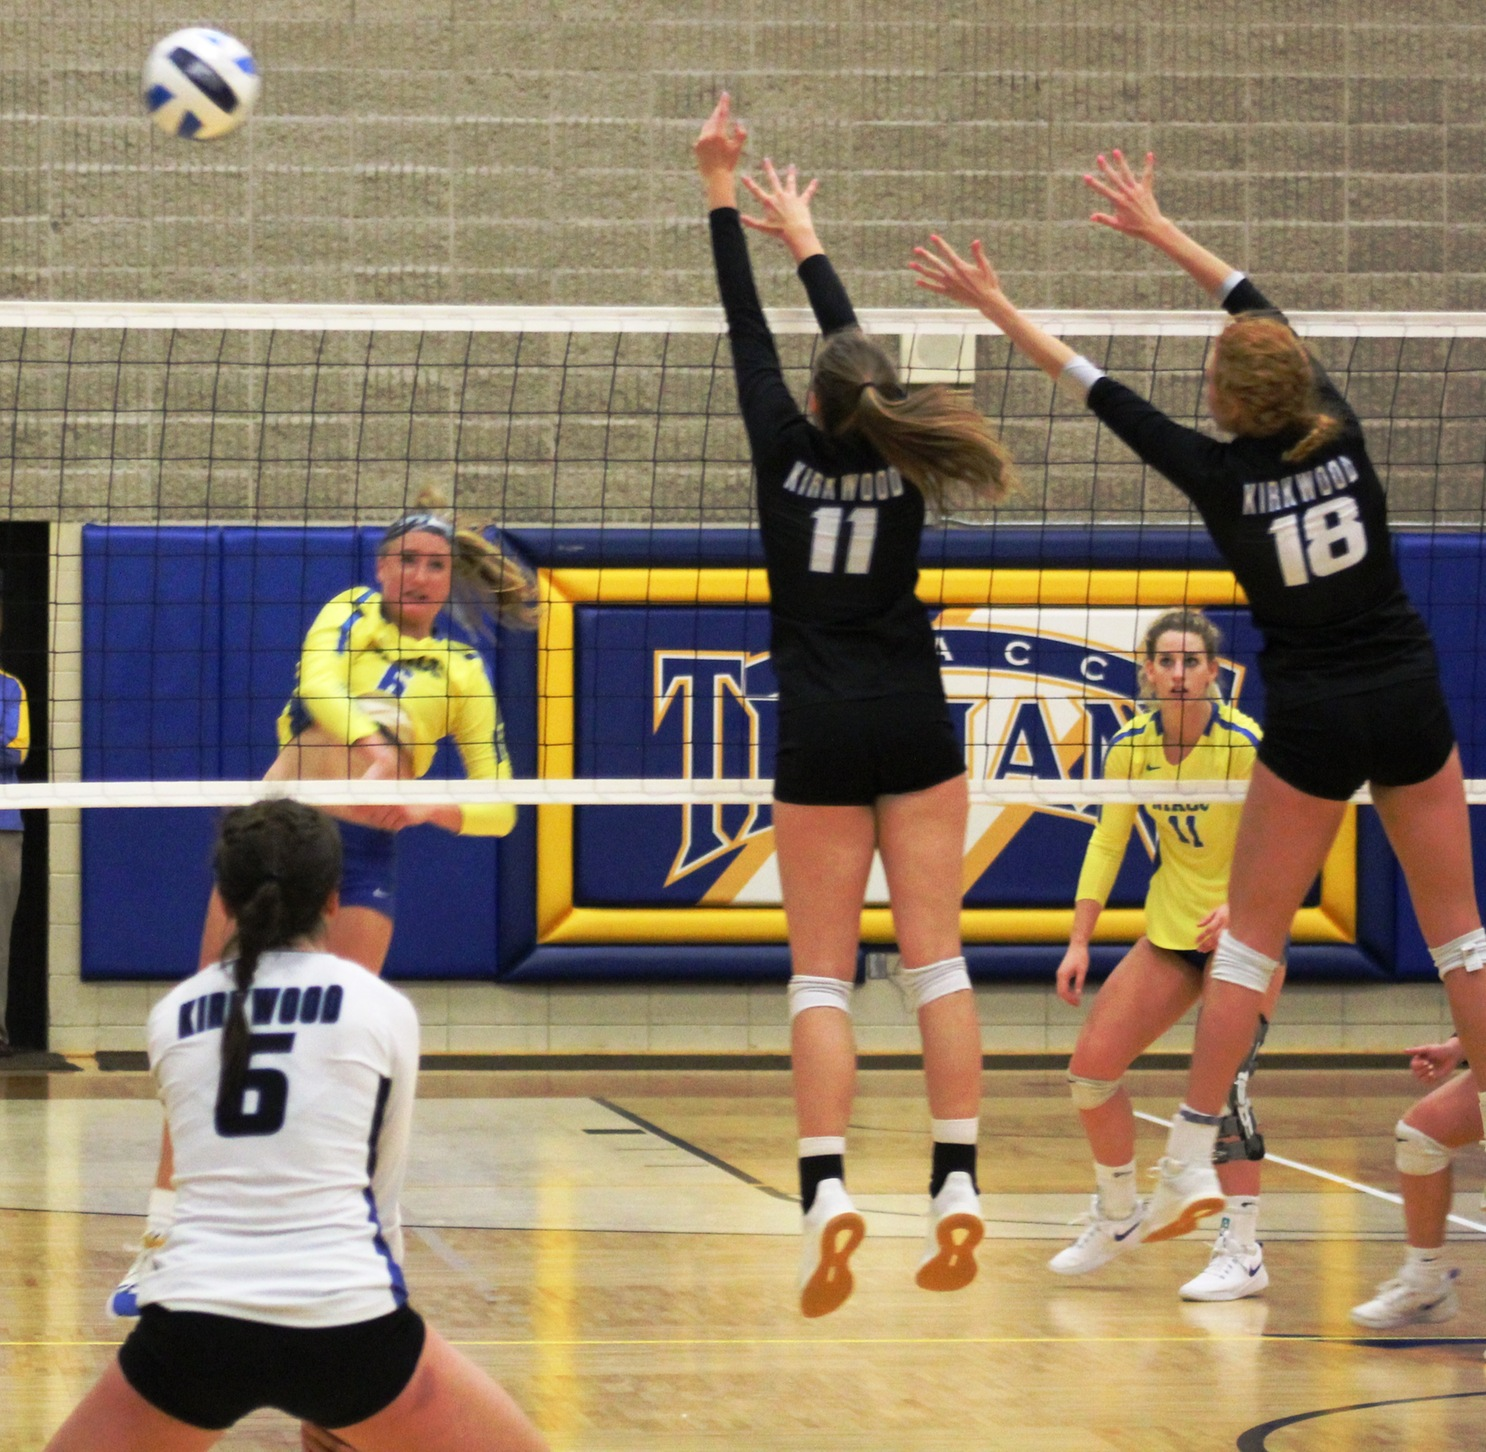 NIACC's Kennedy Meister puts down a kill in last week's win over Kirkwood.